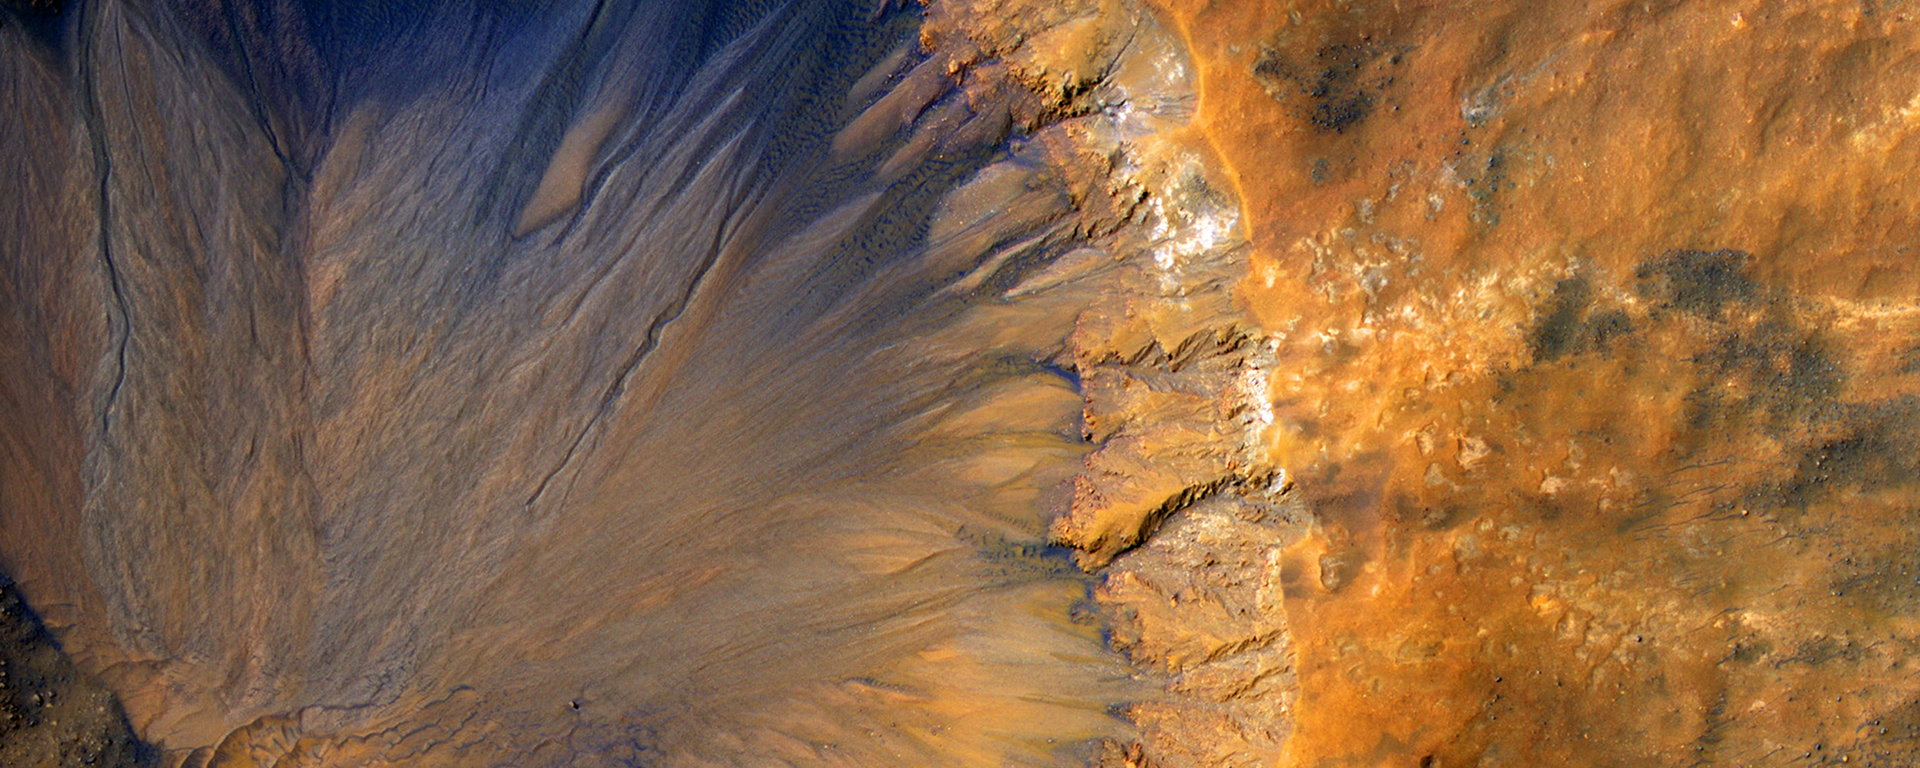 Aerial picture of a large crater on mars